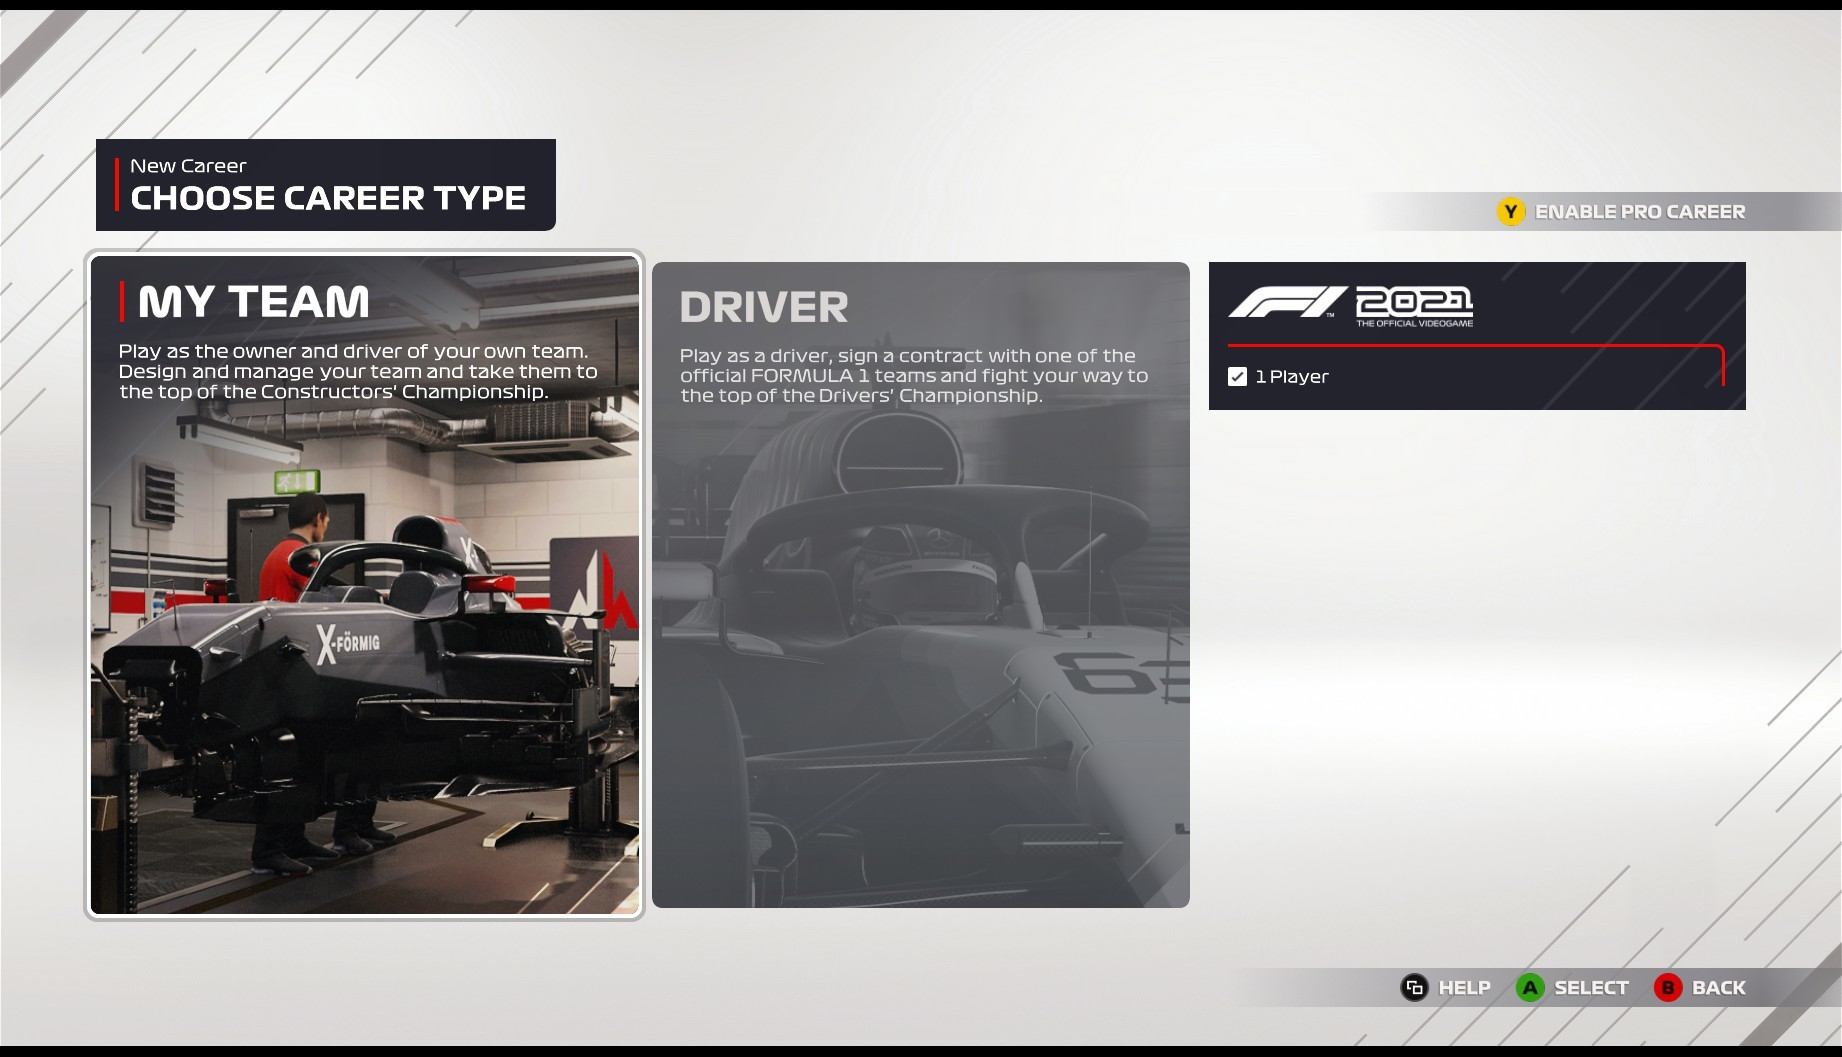 An image of the in-game menus in F1 2021, showing the option to play My Team mode.